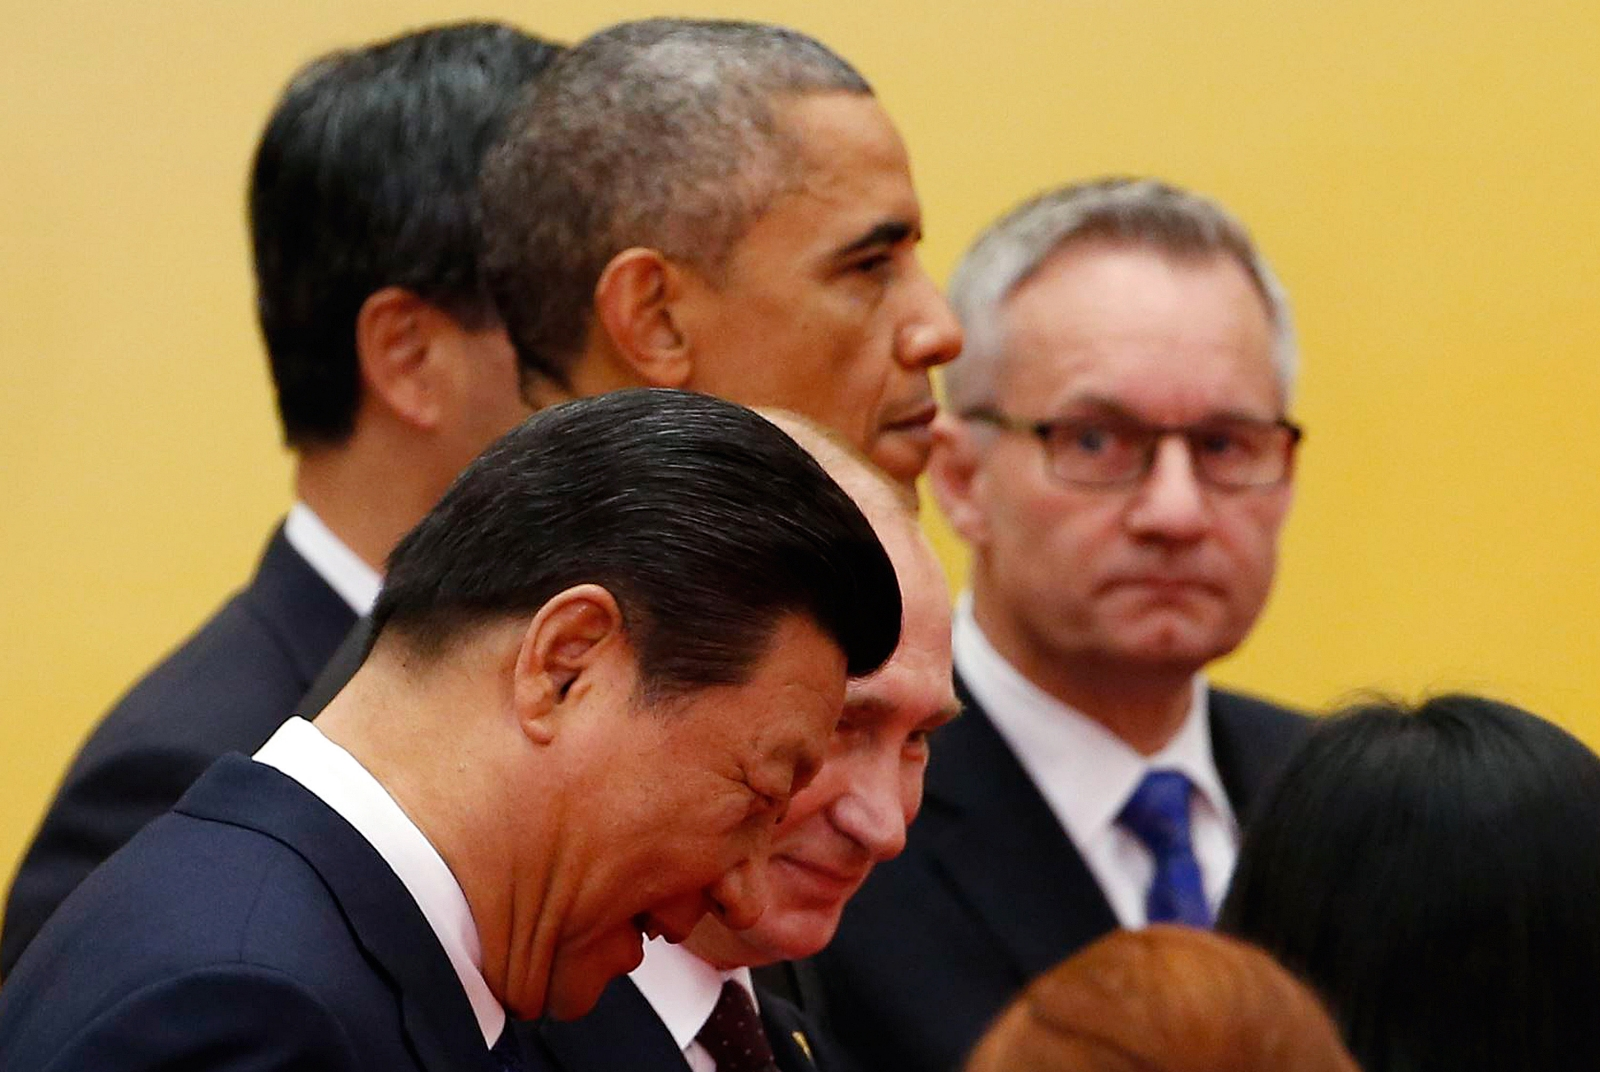 Russia and China relations